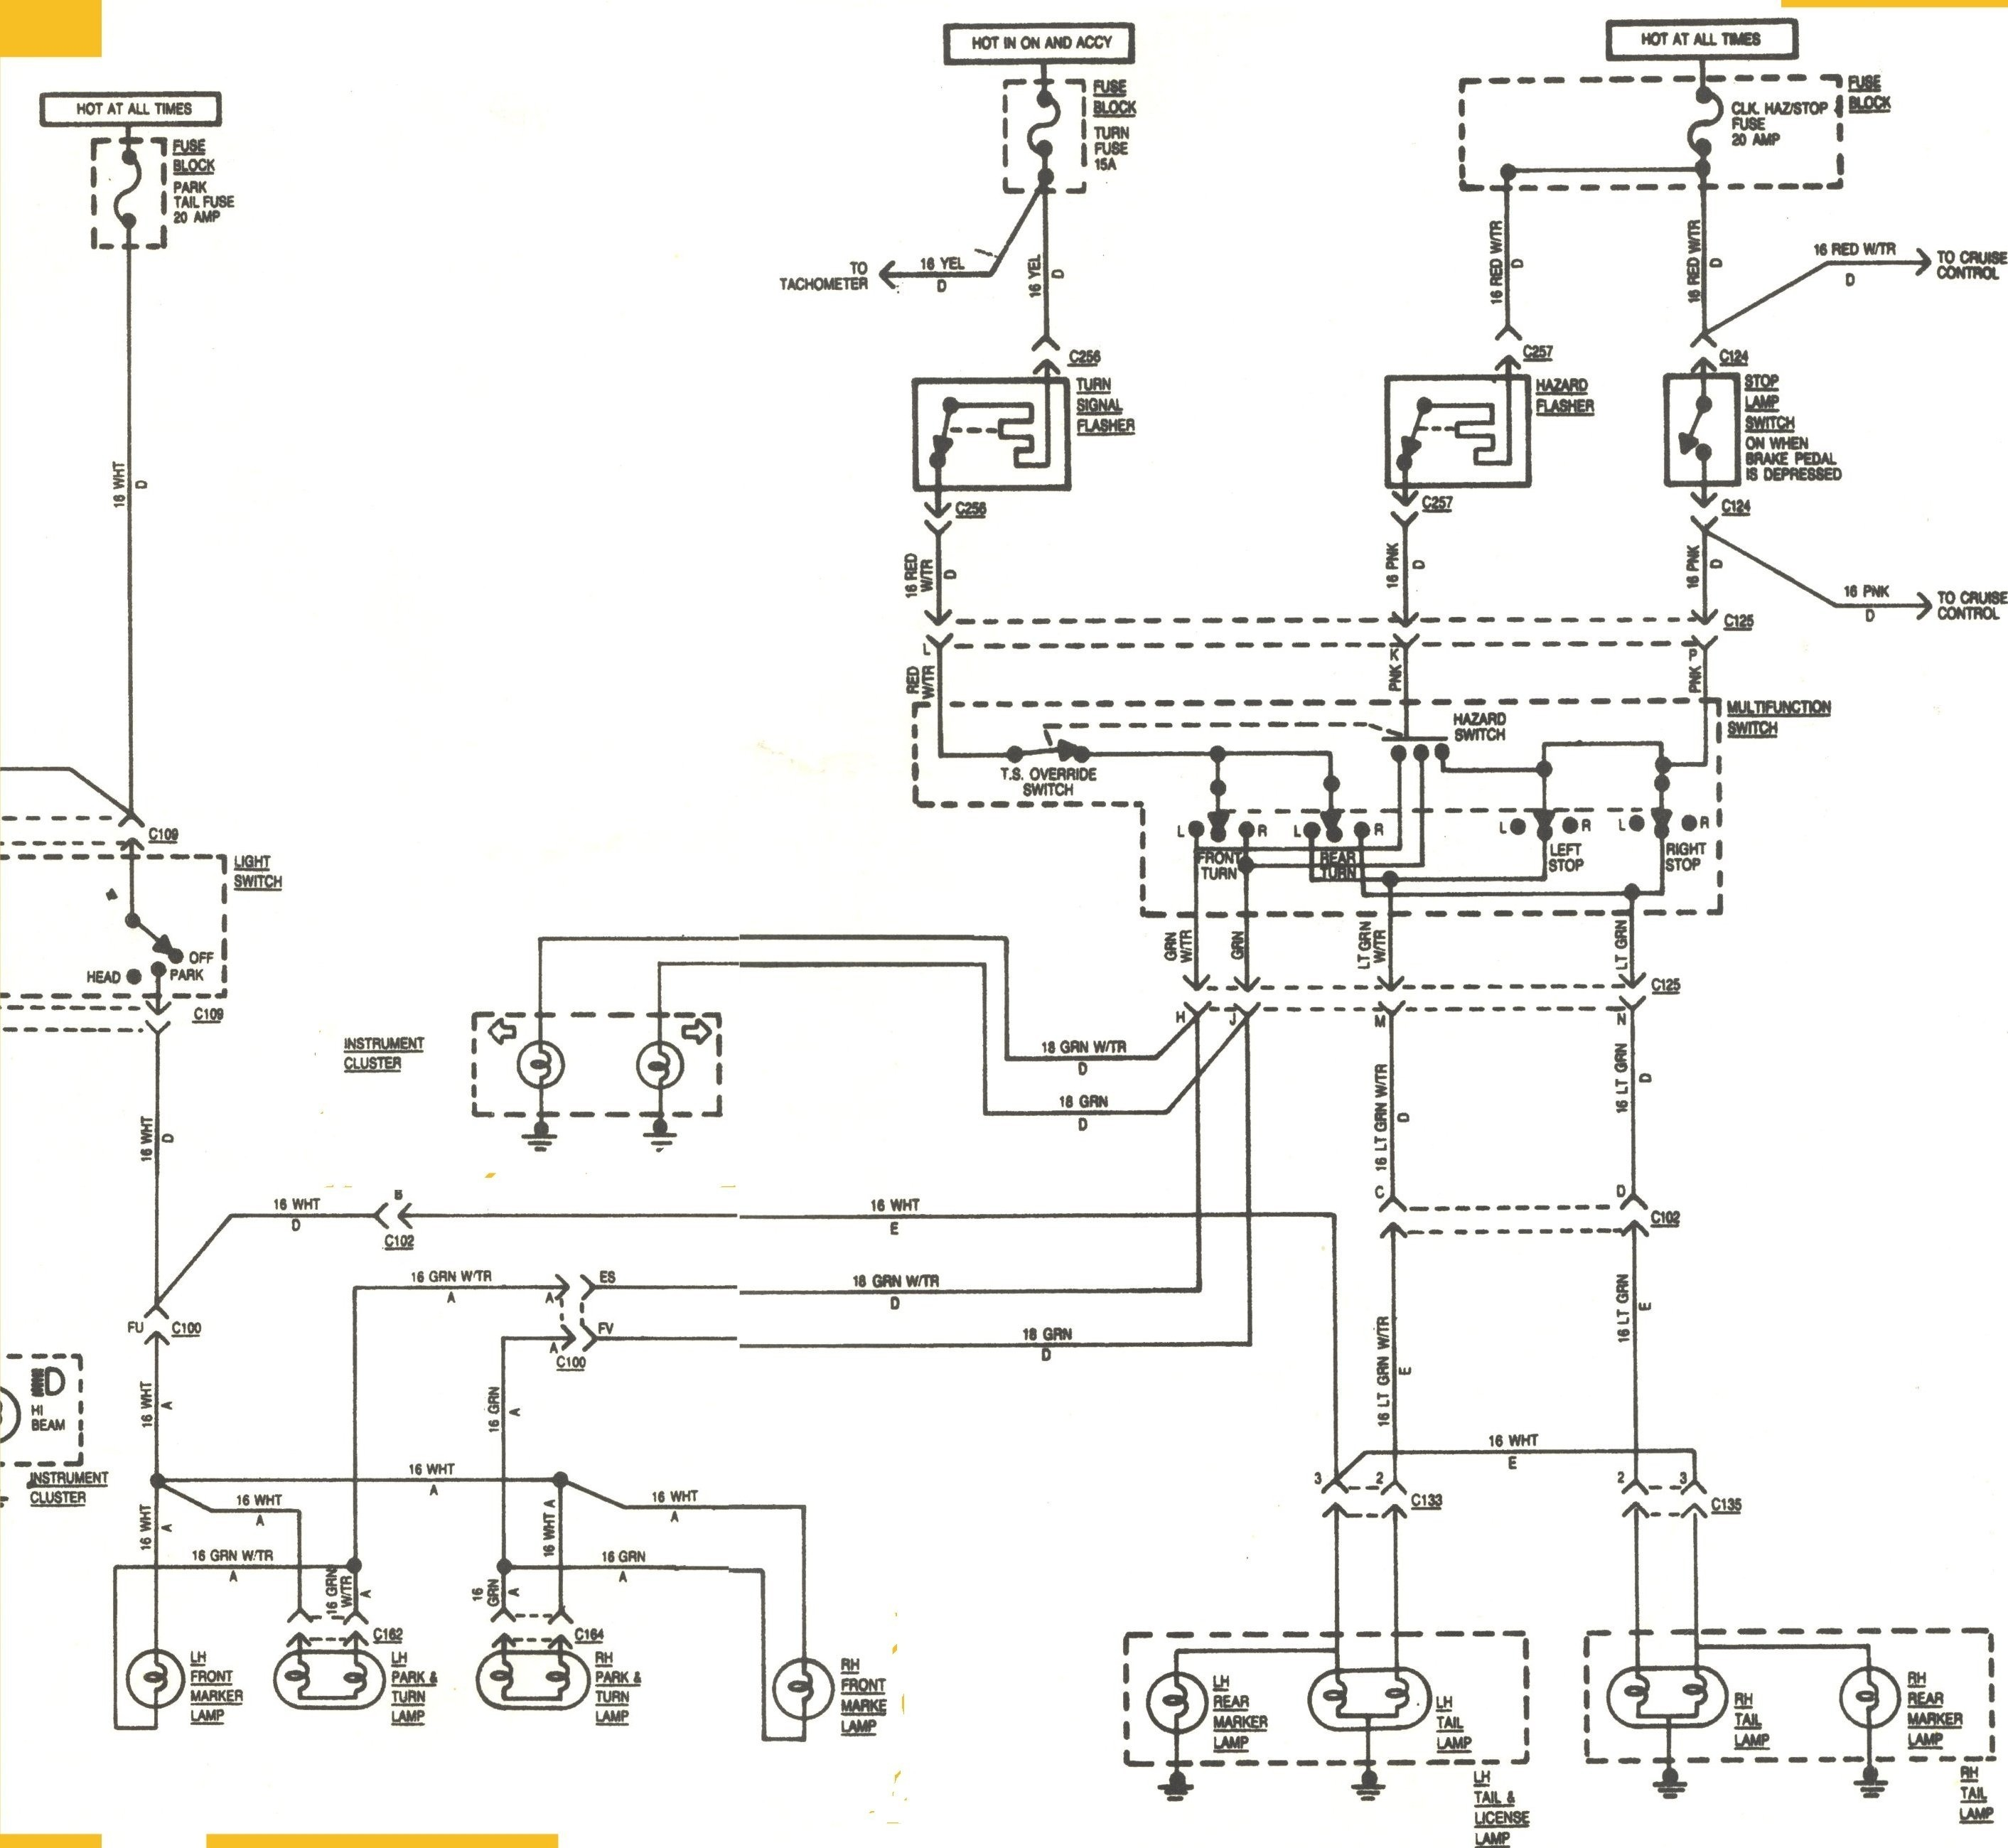 Turn Signal Wiring Diagram Awesome Turn Signal Switch Wiring Diagram Ideas Everything You Of Turn Signal Wiring Diagram